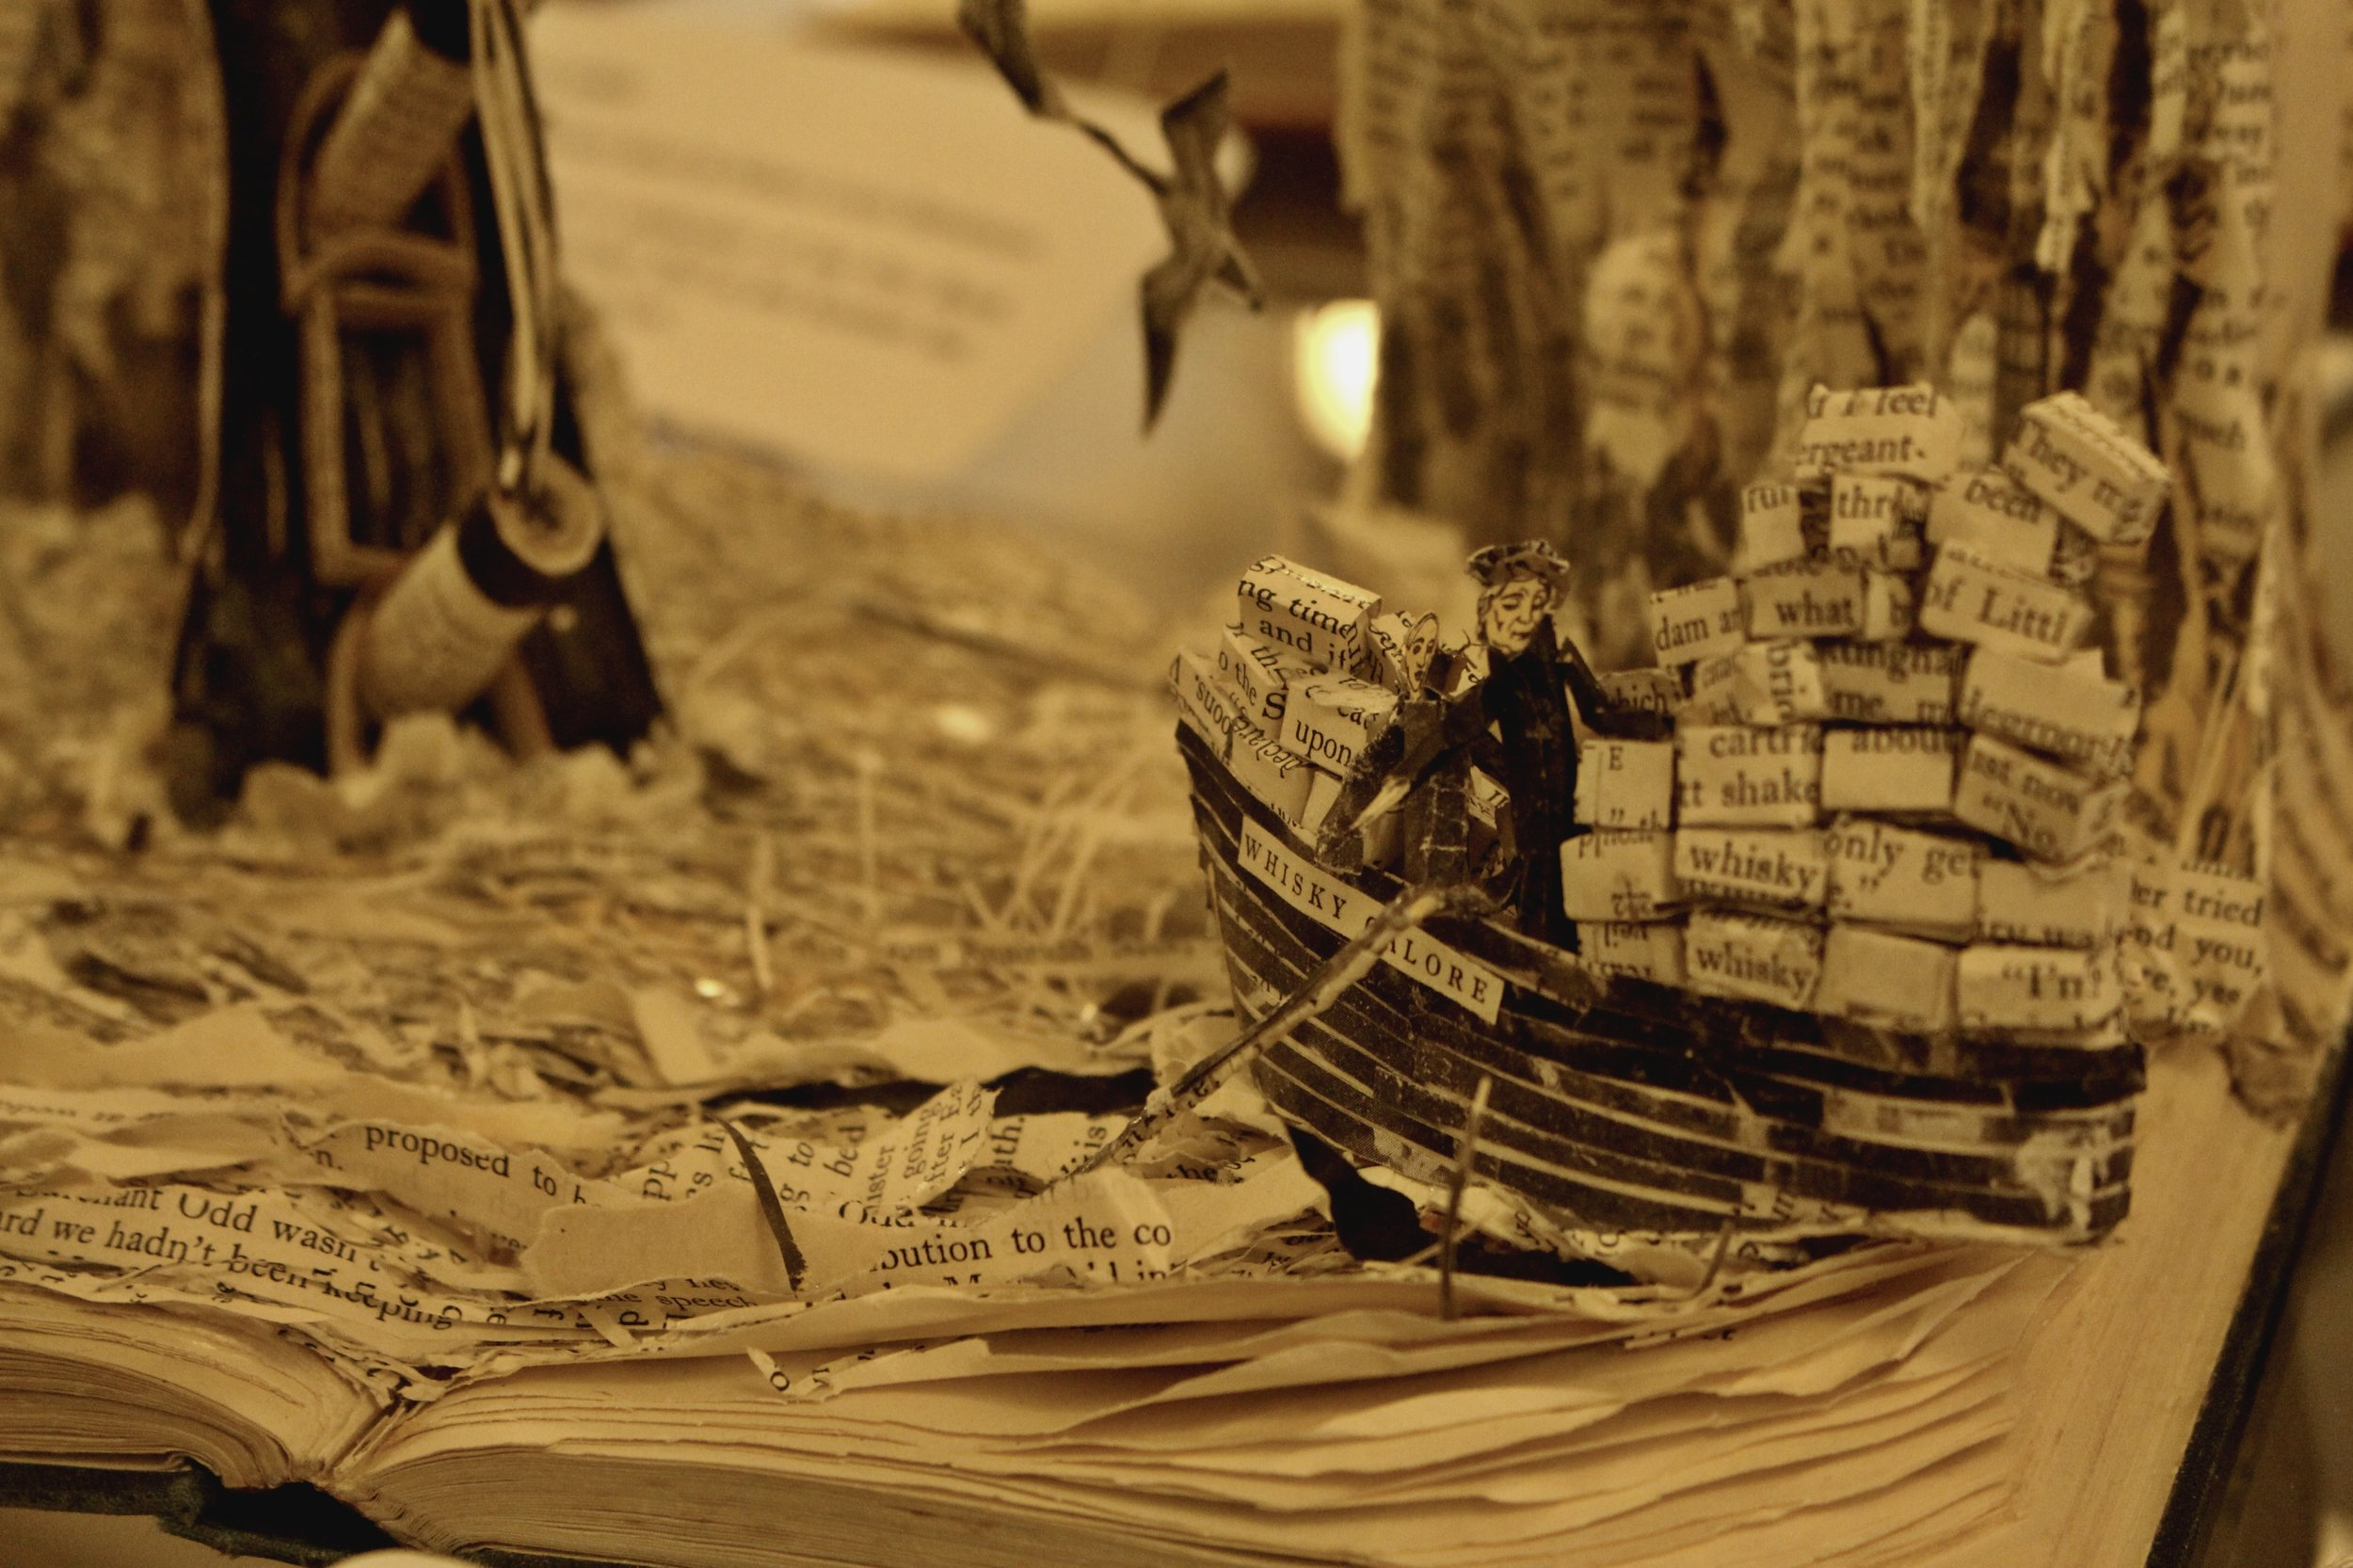 Book art displayed at the public library in Edinburgh.